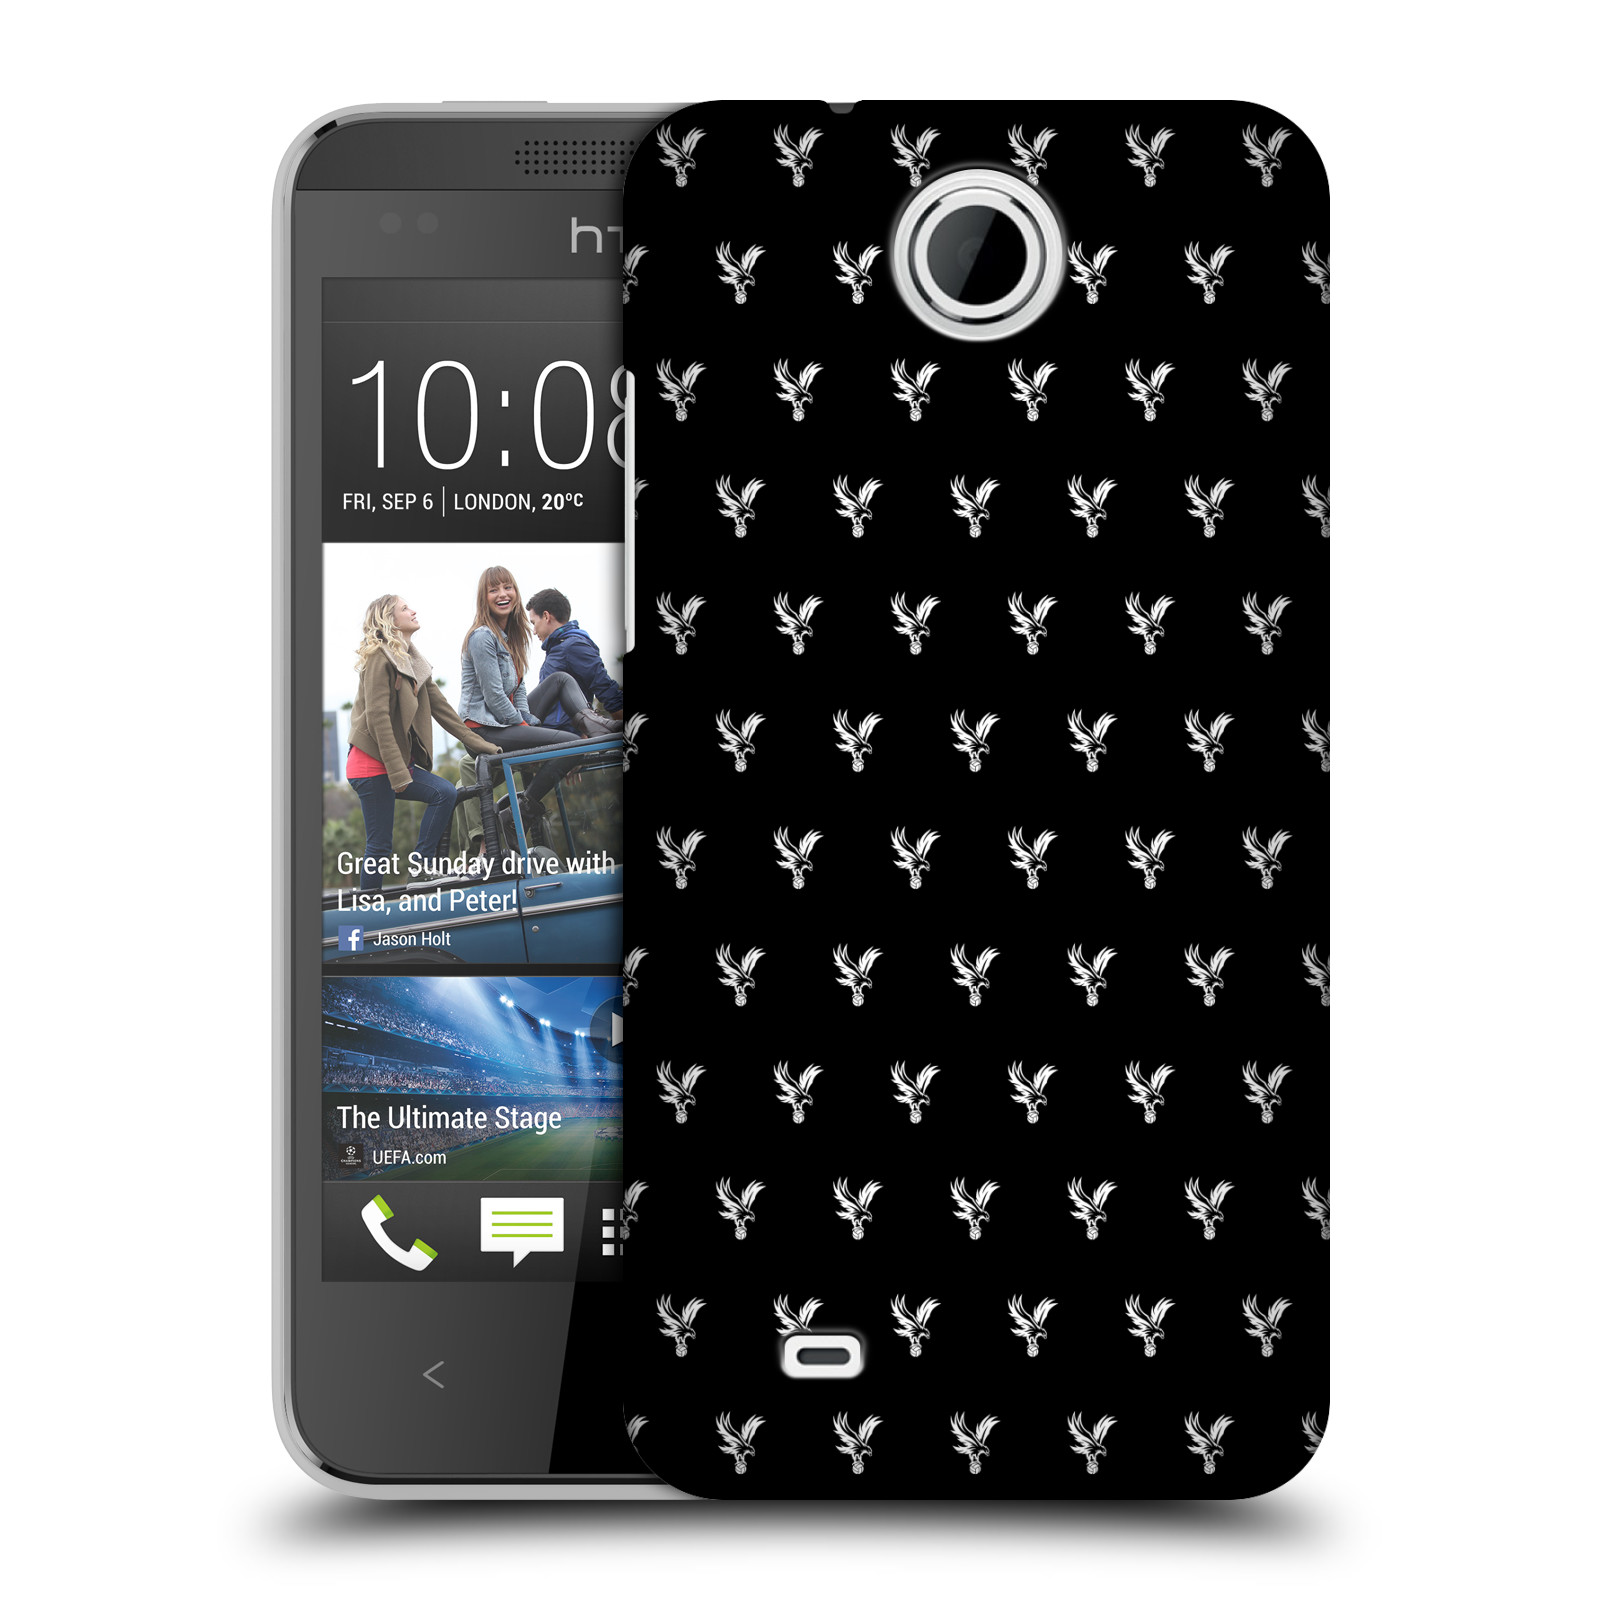 OFFICIAL-CRYSTAL-PALACE-FC-2017-18-CREST-AND-PATTERNS-BACK-CASE-FOR-HTC-PHONES-3